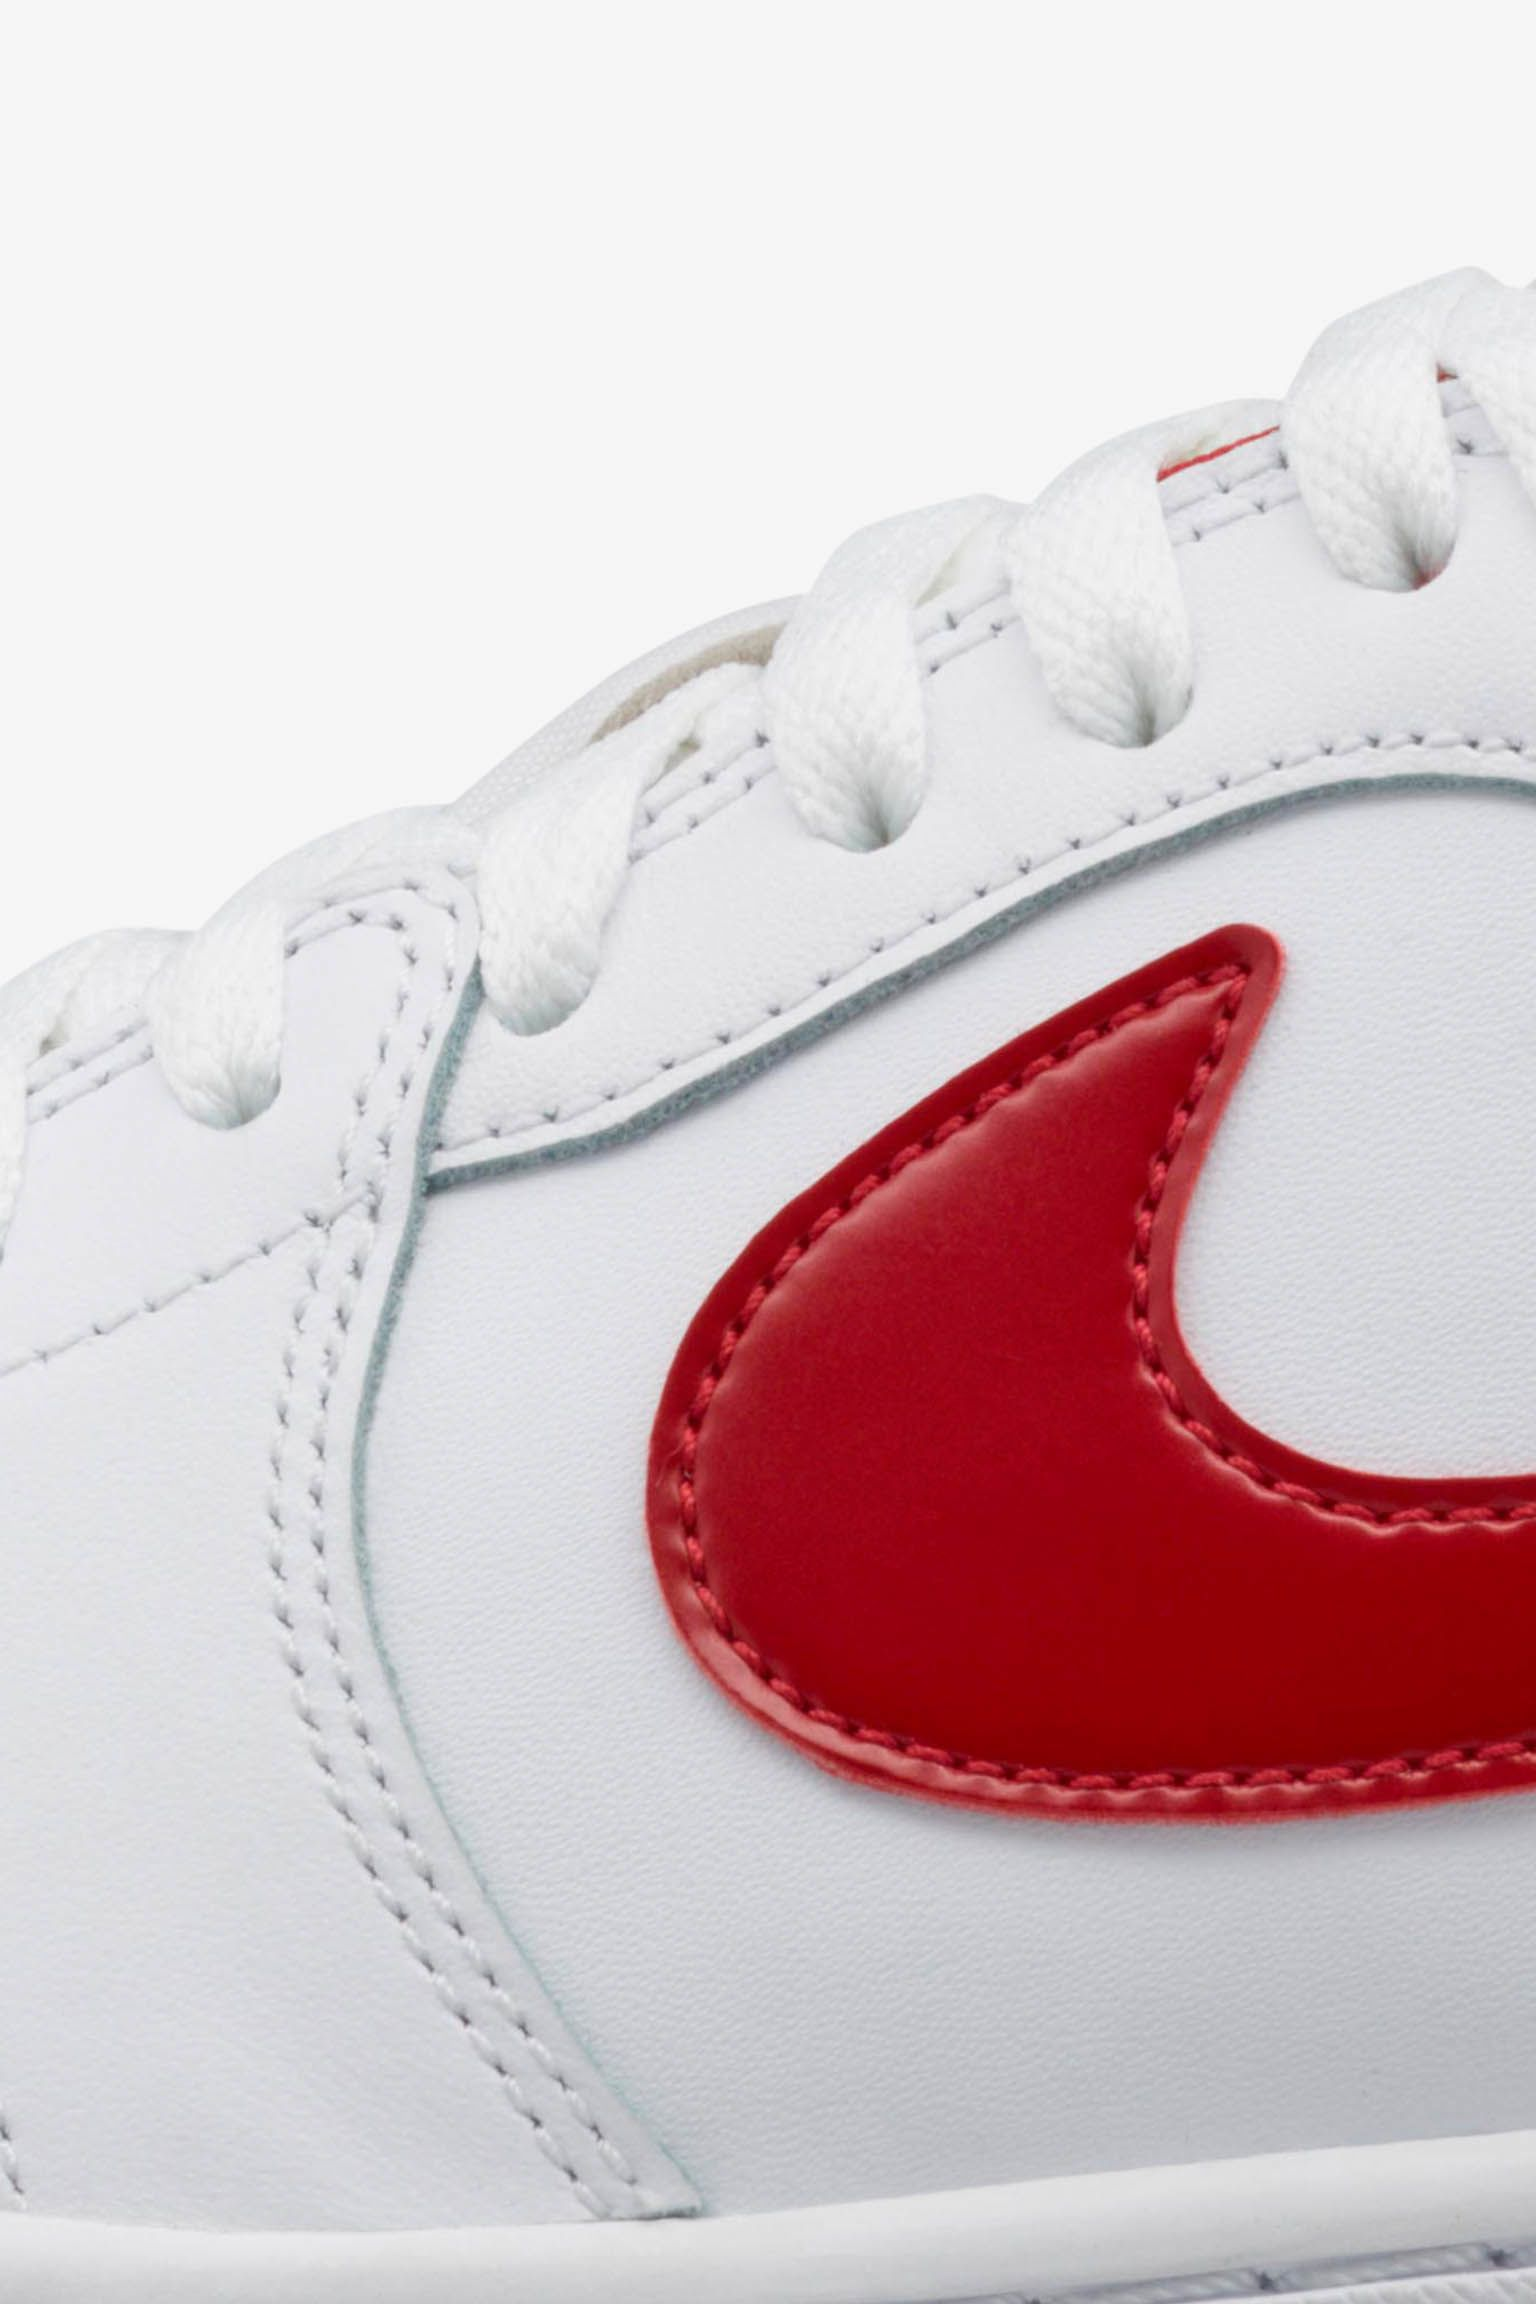 Air Jordan 1 Retro Low 'White & Red' Release Date